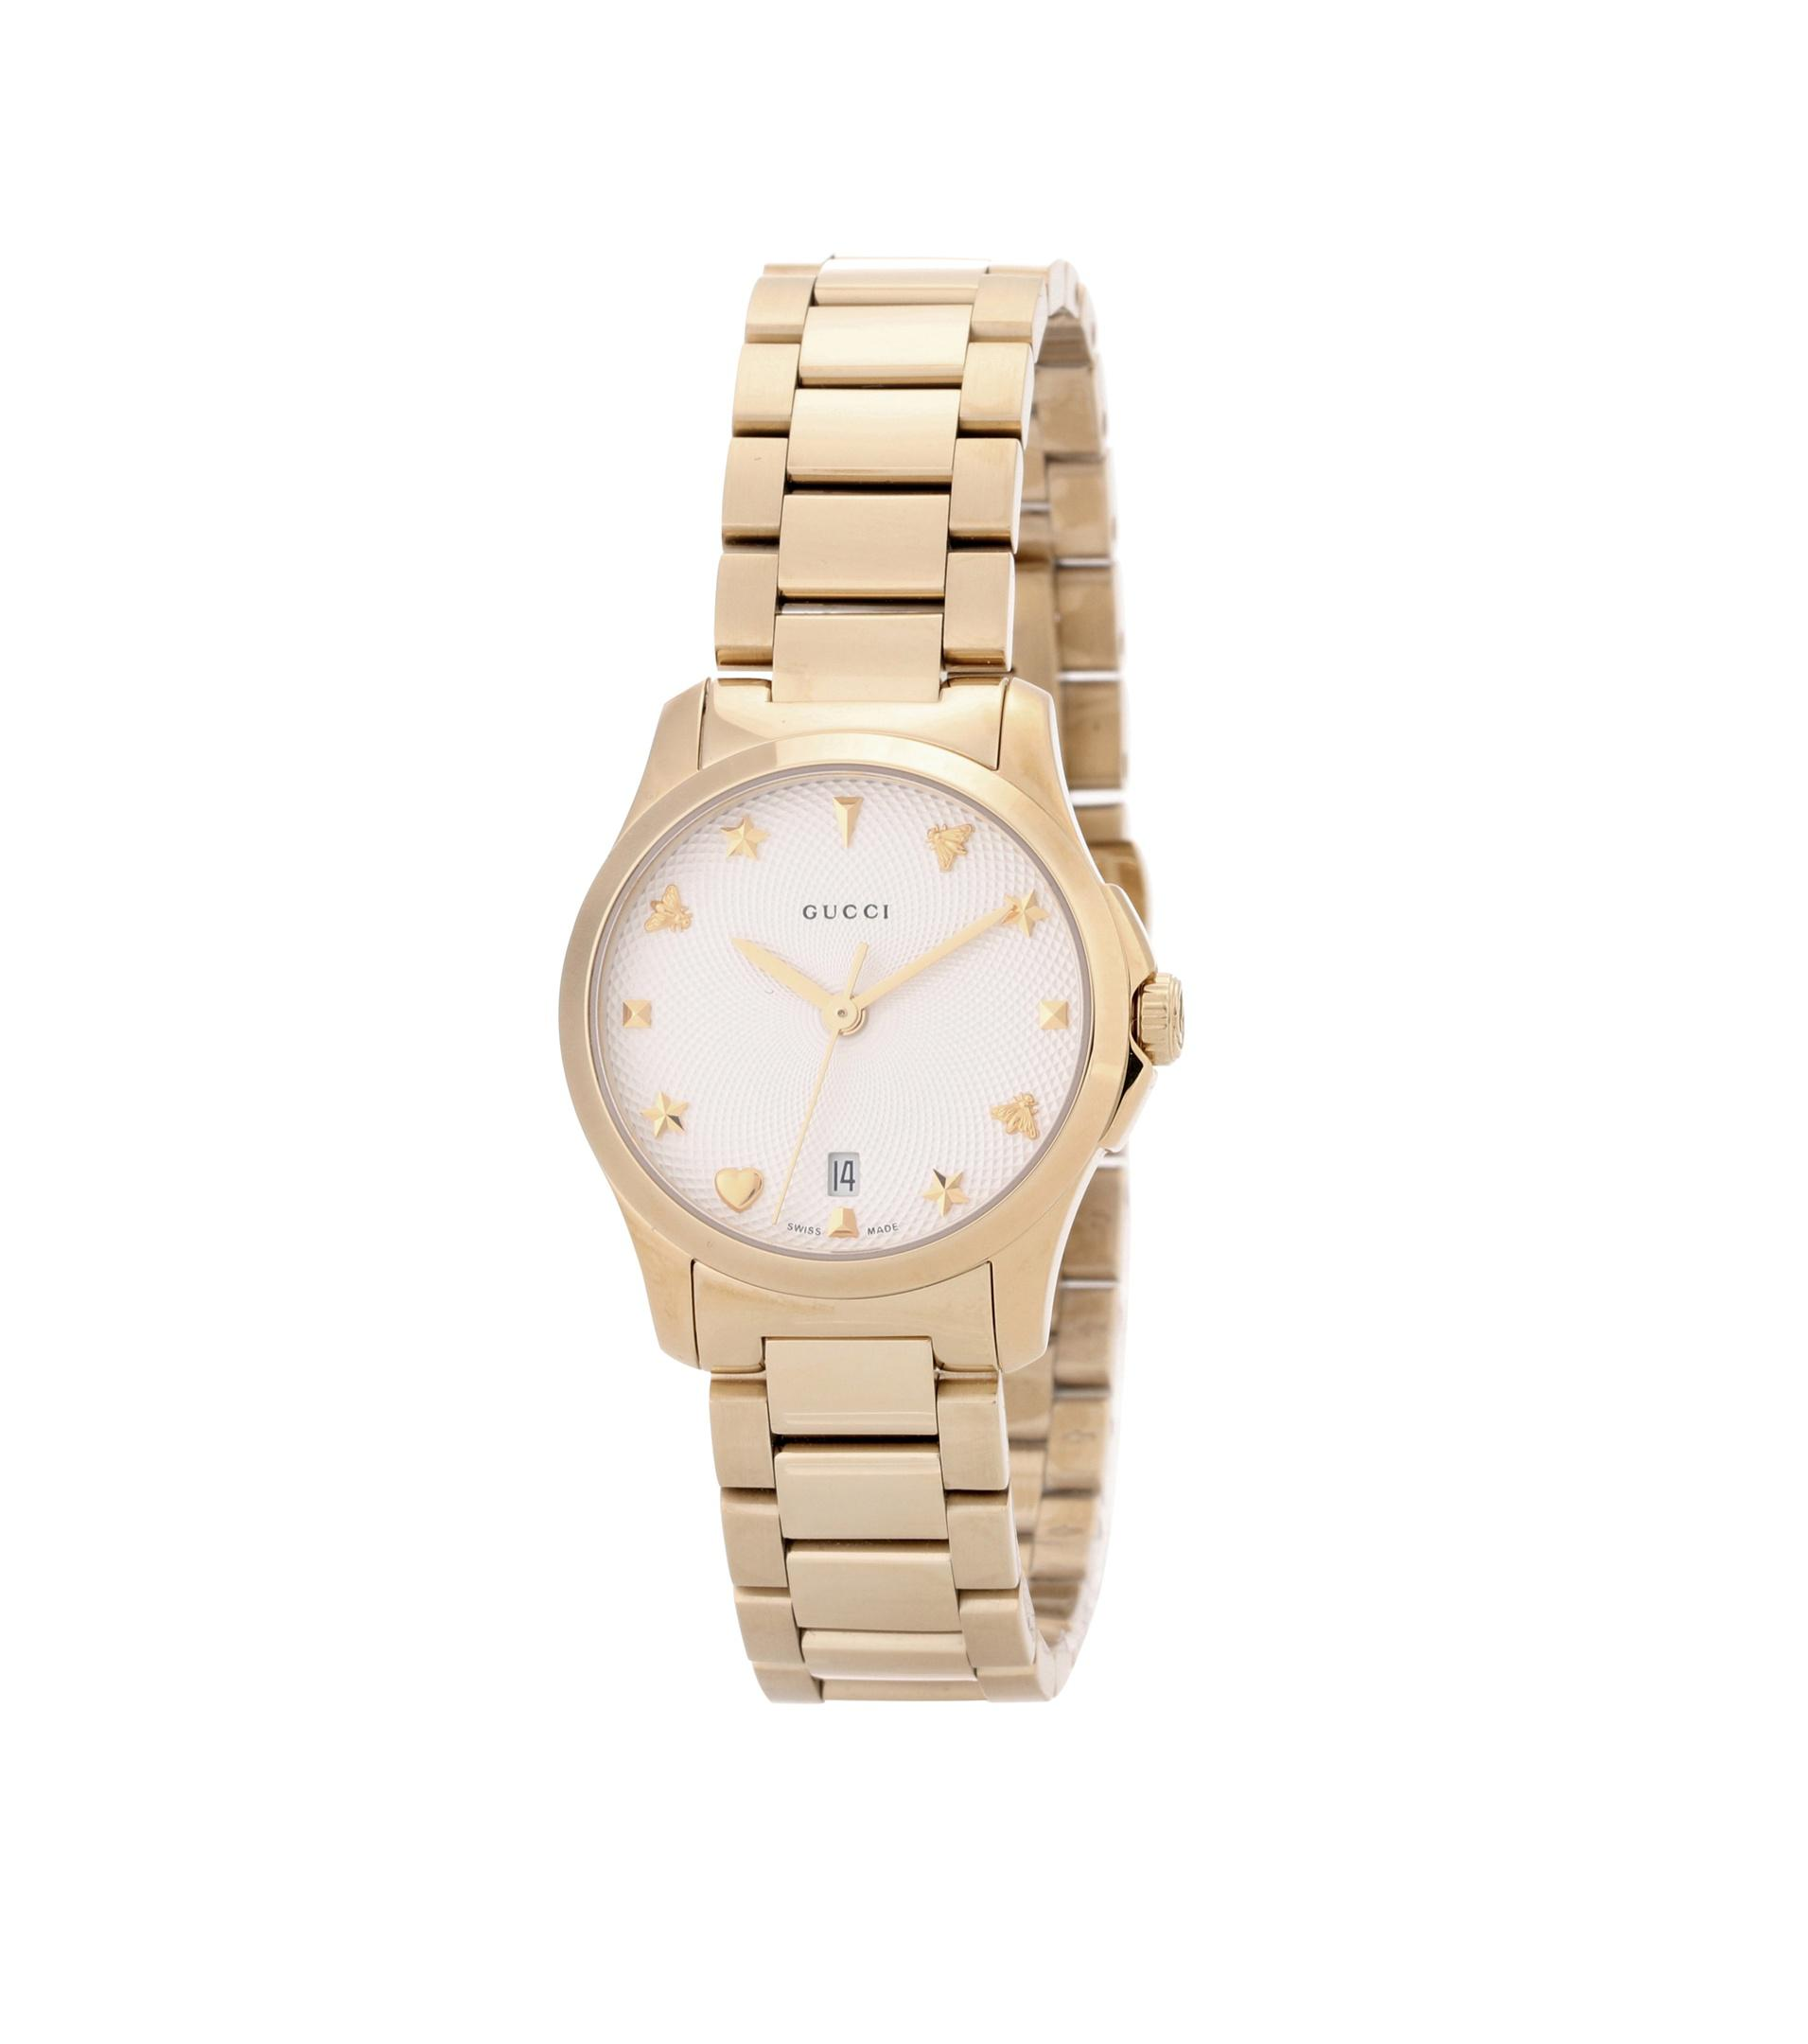 f900c03b896 Gucci - Metallic G-timeless Small Gold-plated Stainless Steel Watch - Lyst.  View fullscreen